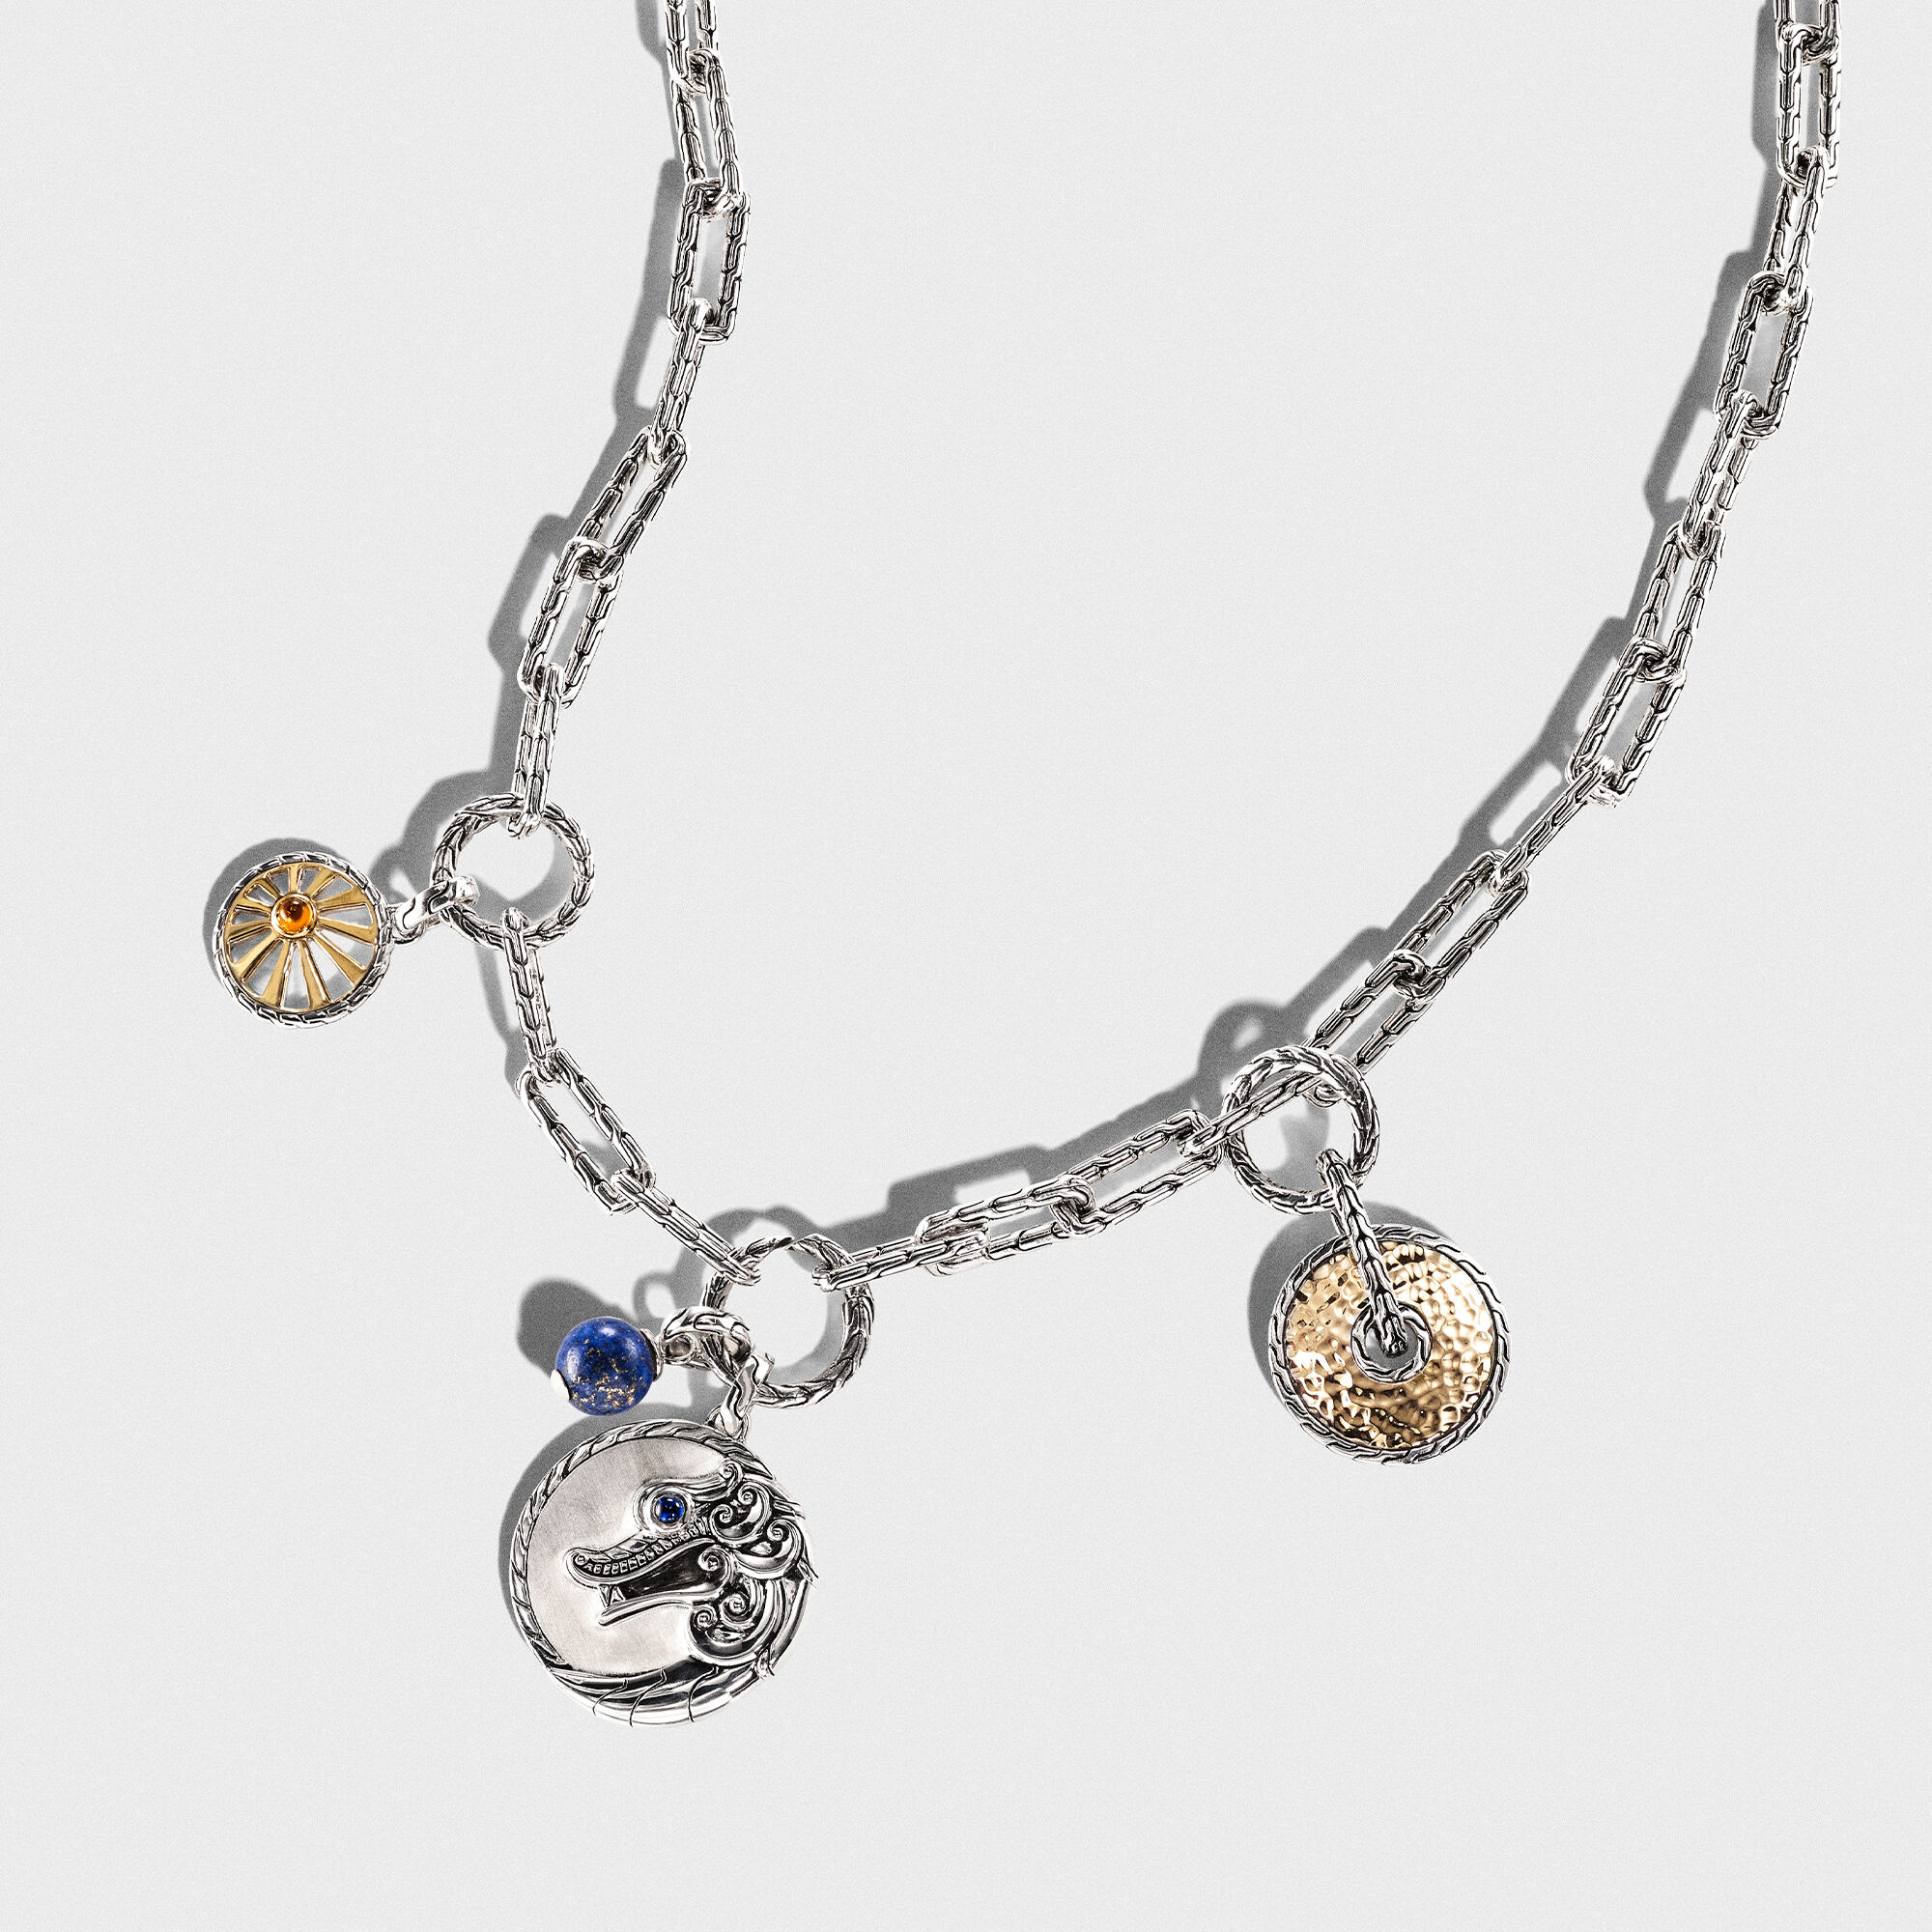 Classic Chain Amulet in Silver with Diamond, Blue Sapphire, large